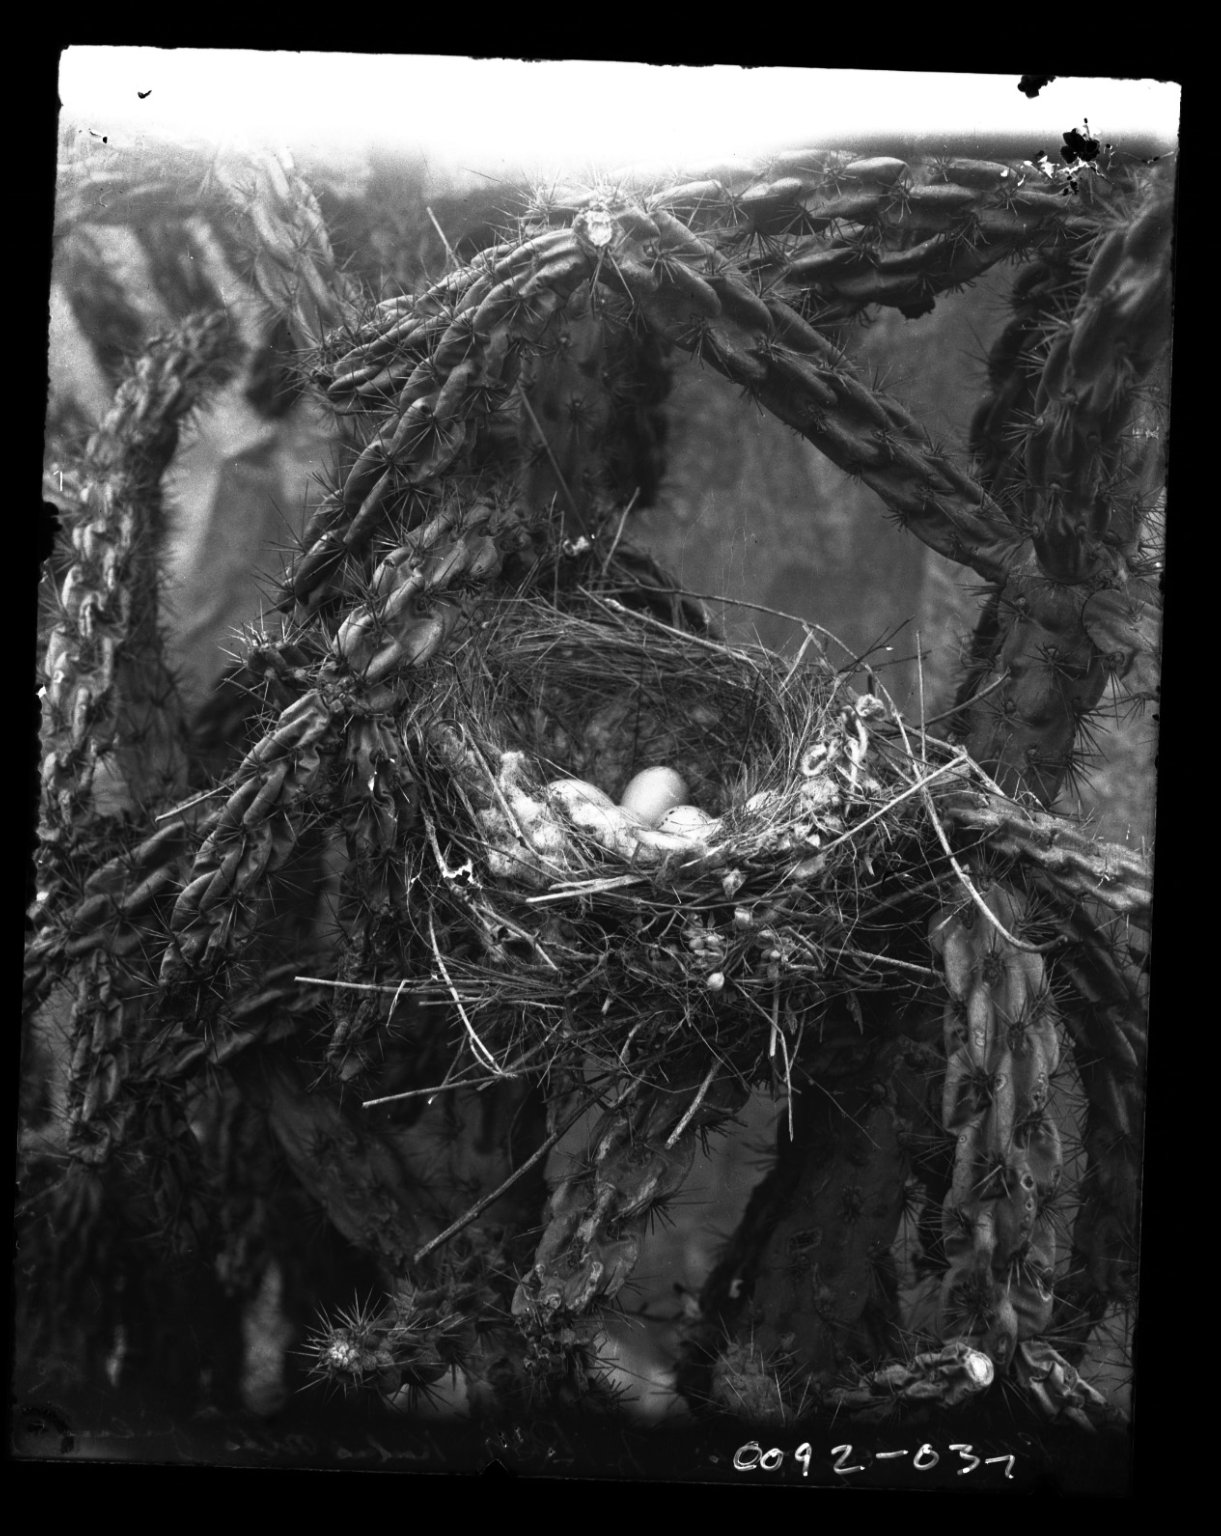 Nest and eggs in a Cholla Cactus in the Western USA.